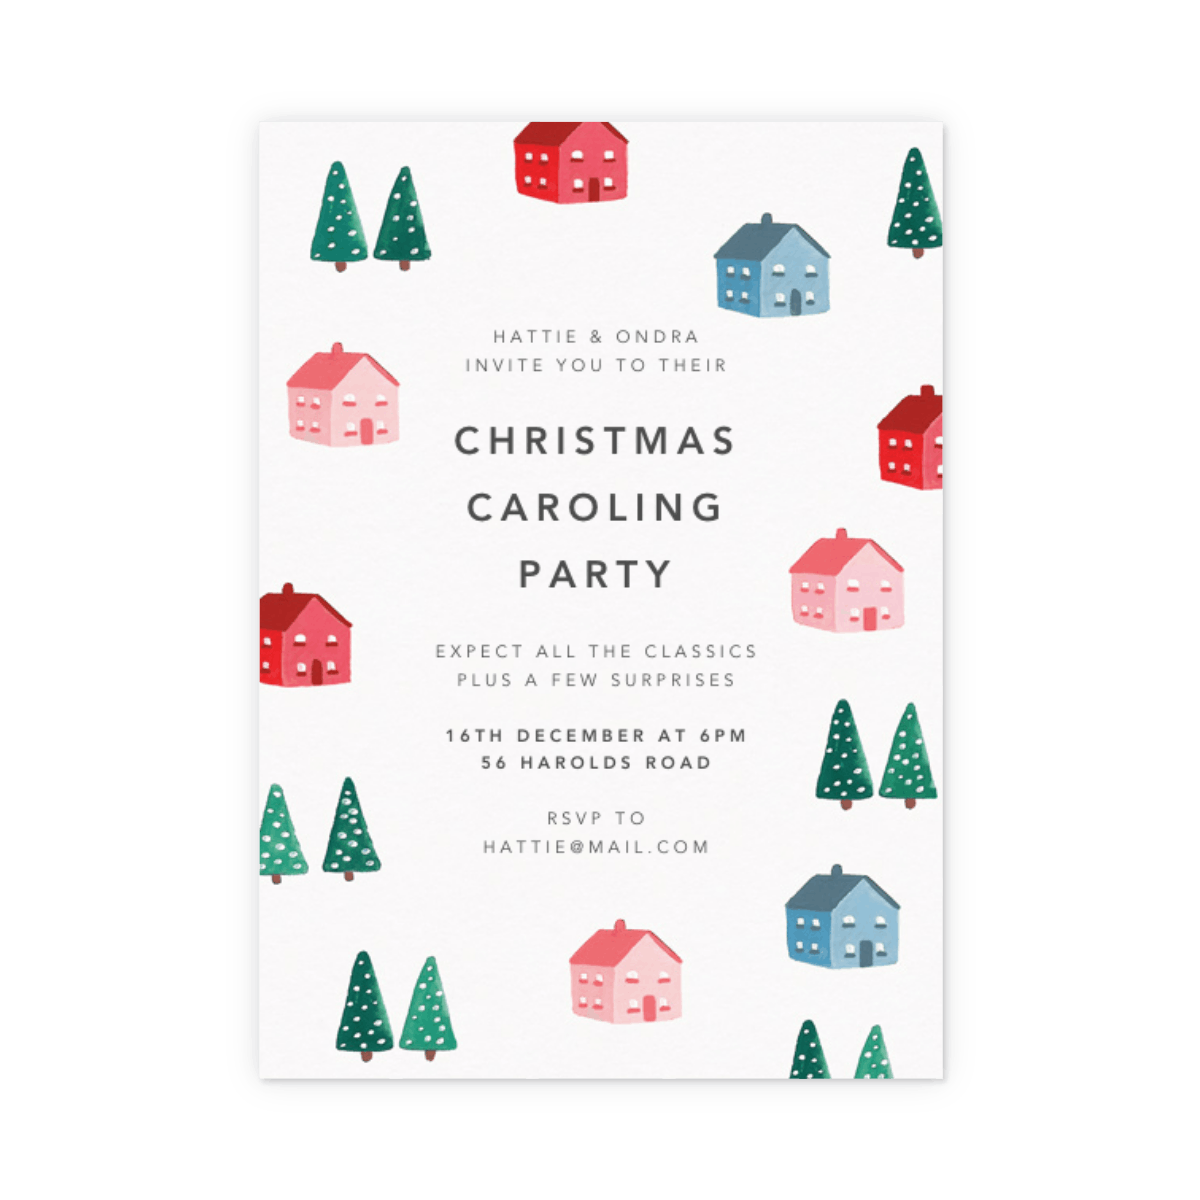 Https%3a%2f%2fwww.papier.com%2fproduct image%2f25714%2f4%2fchristmas town 6414 front 1500977657.png?ixlib=rb 1.1